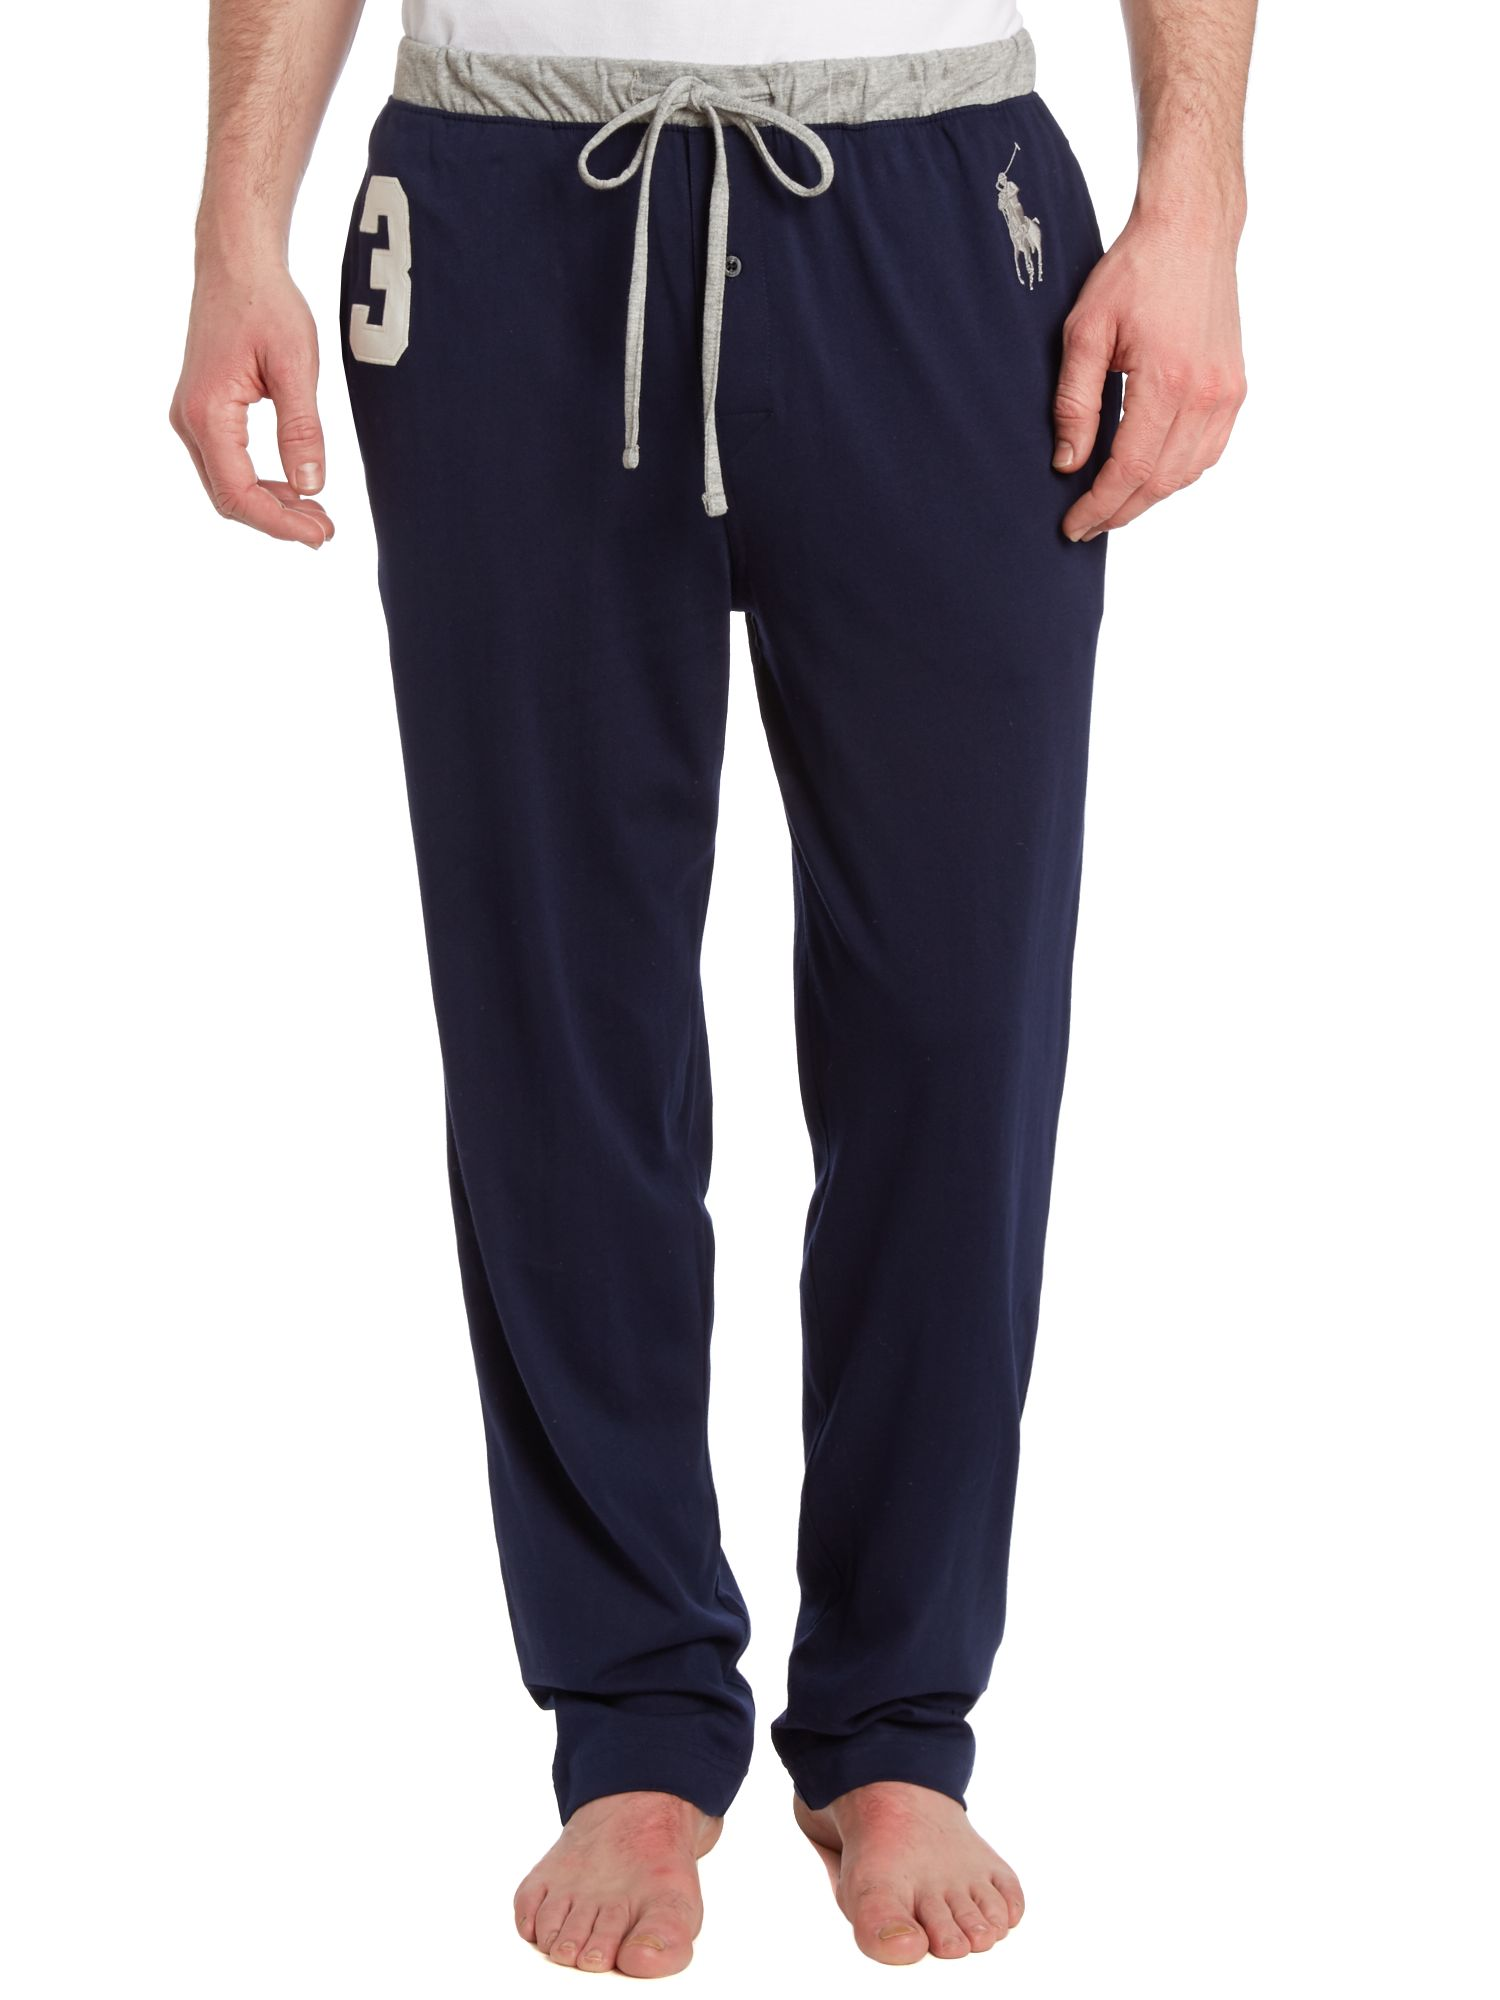 No3 nightwear pant